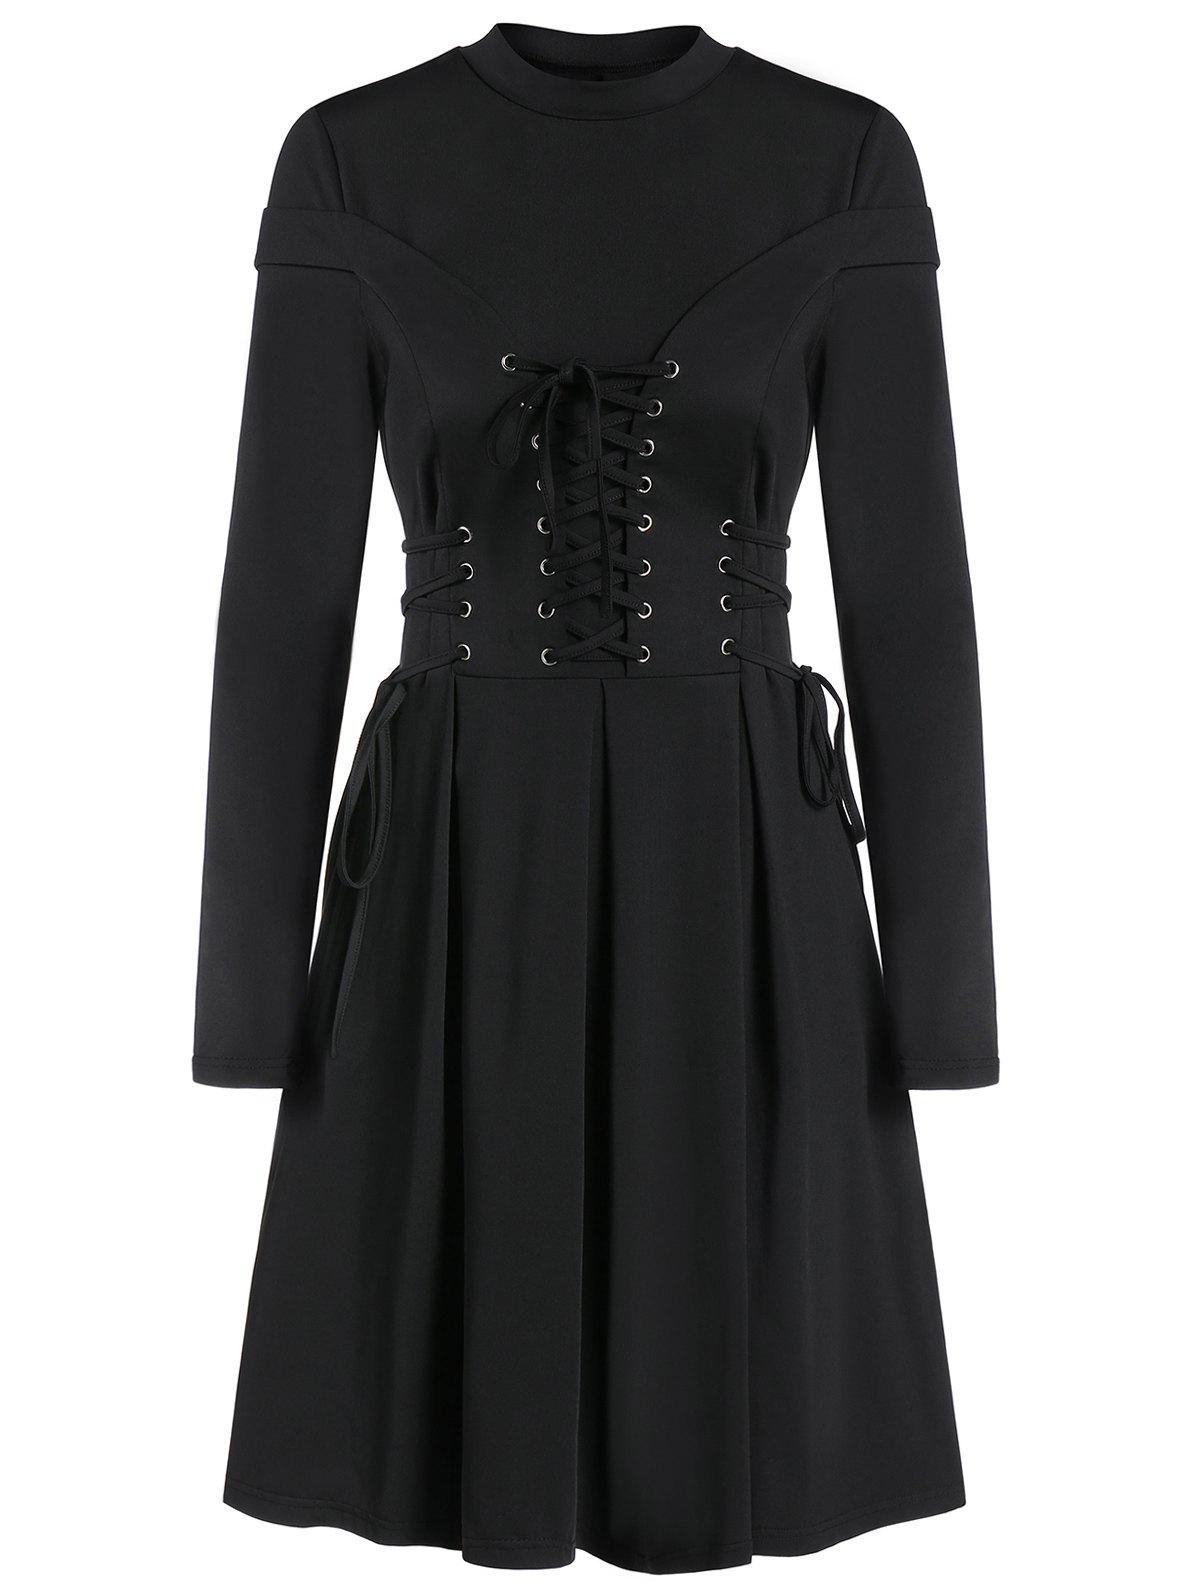 Store Long Sleeve Lace-up A Line Pleated Gothic Dress